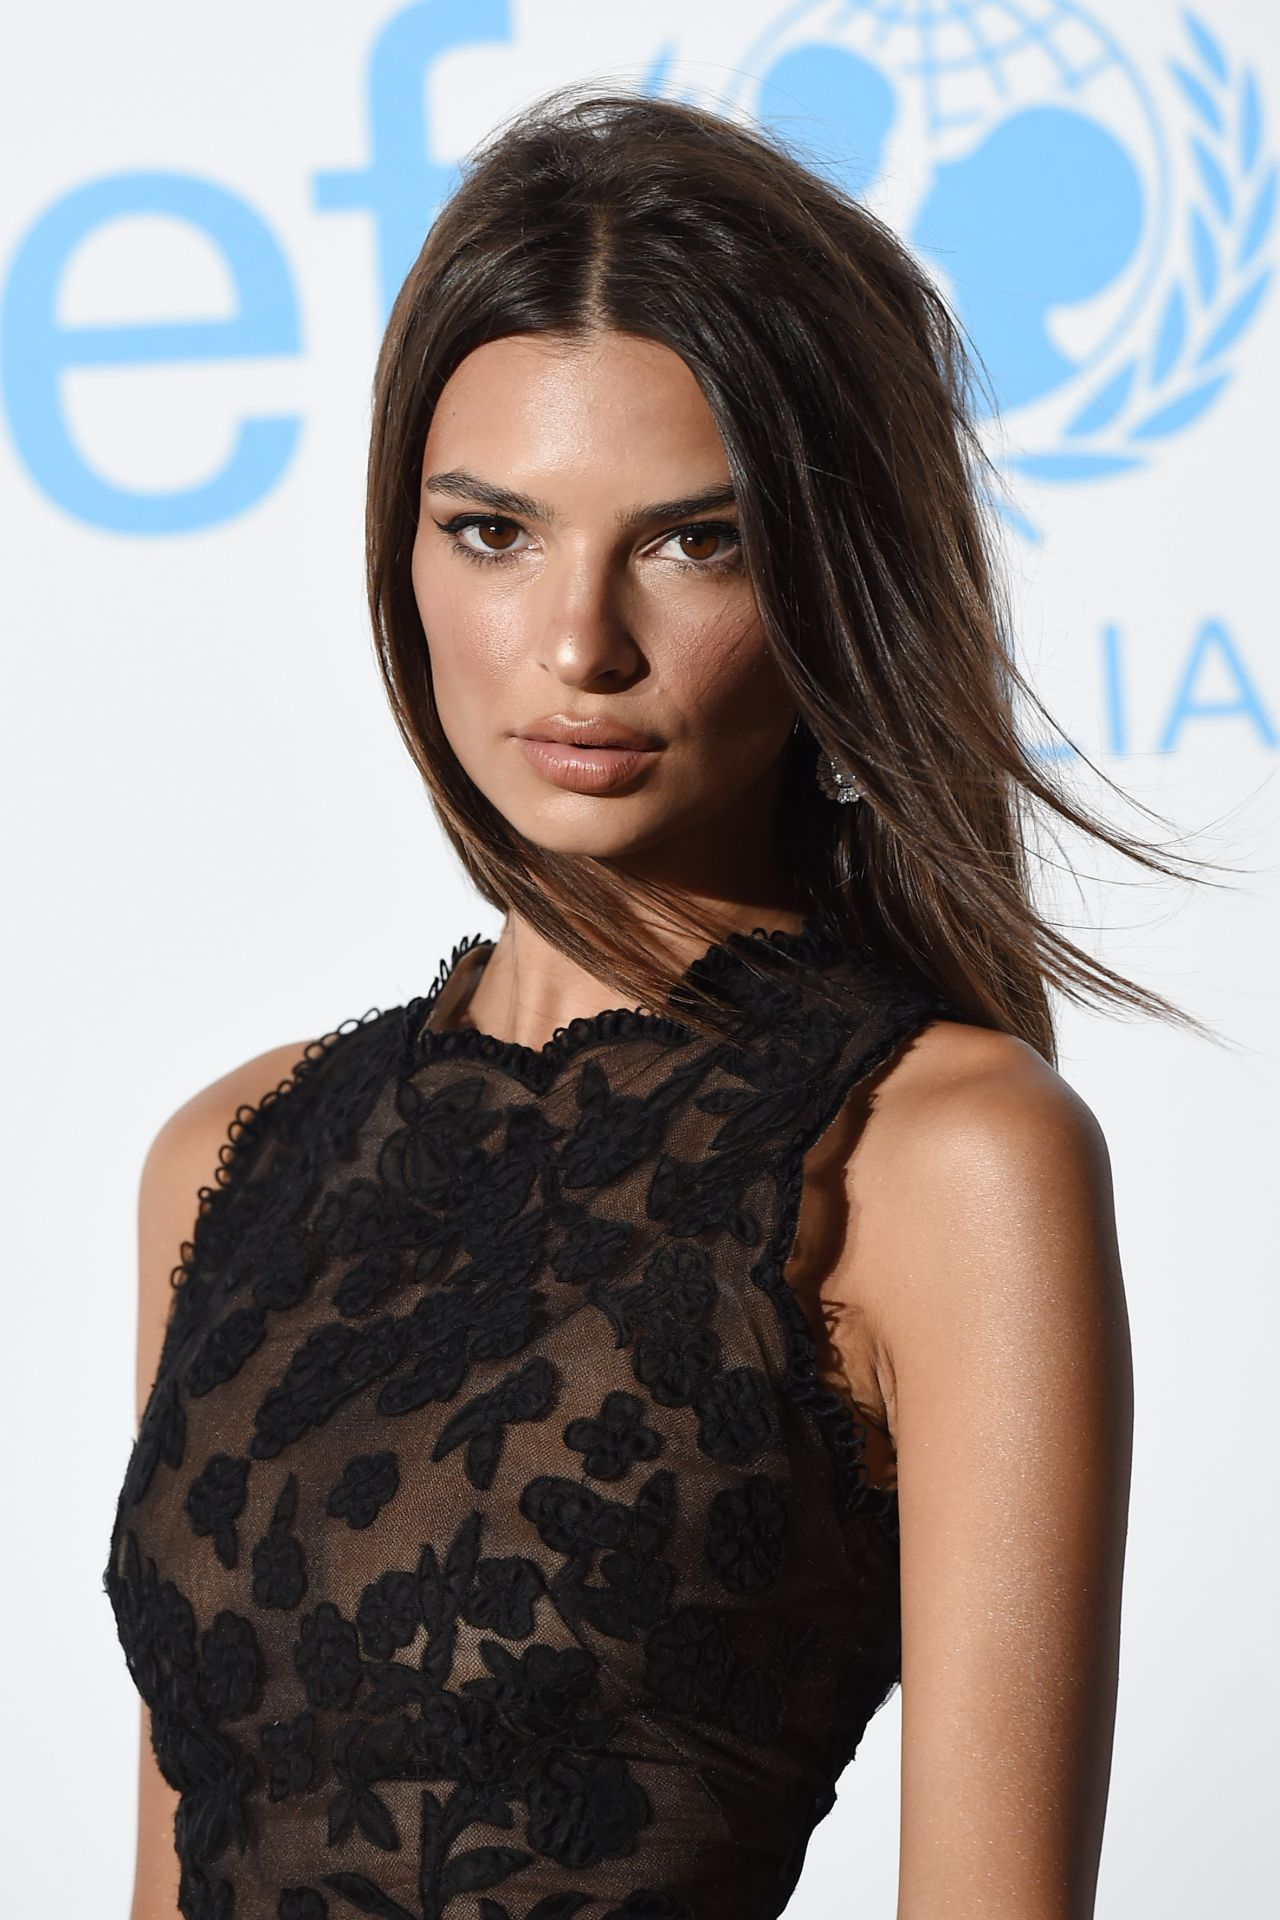 Emily Ratajkowski photo #861379